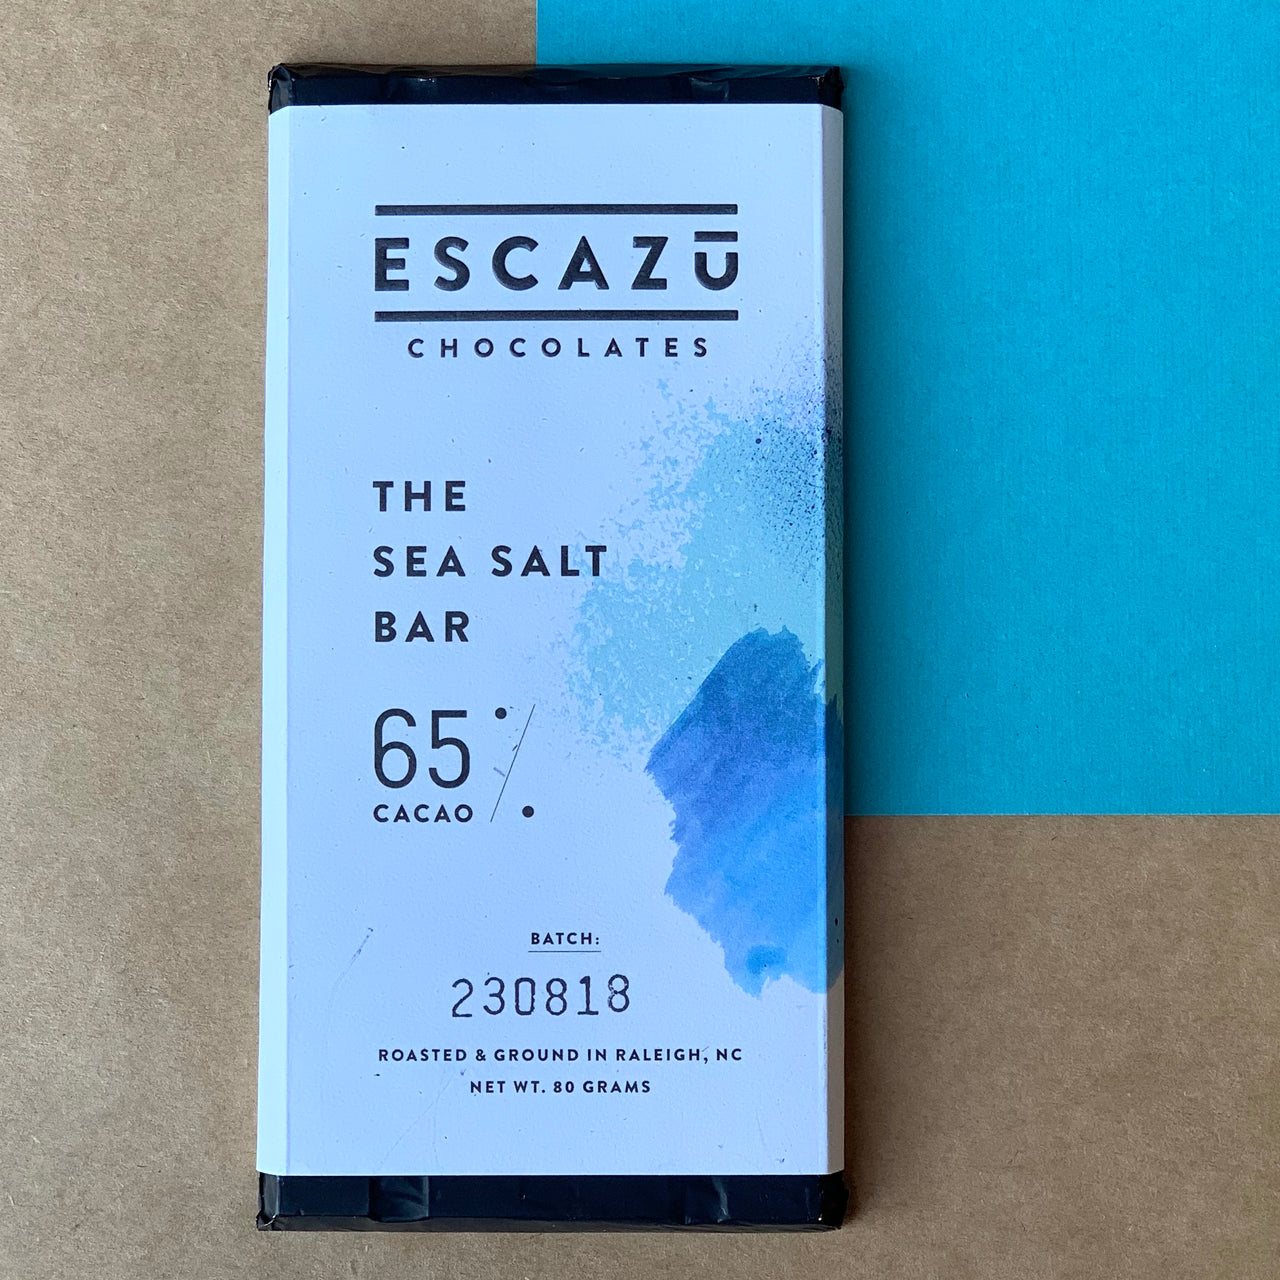 The Escazu Sea Salt Bar is 65% dark chocolate, and roasted Bean to Bar in Raleigh, NC.